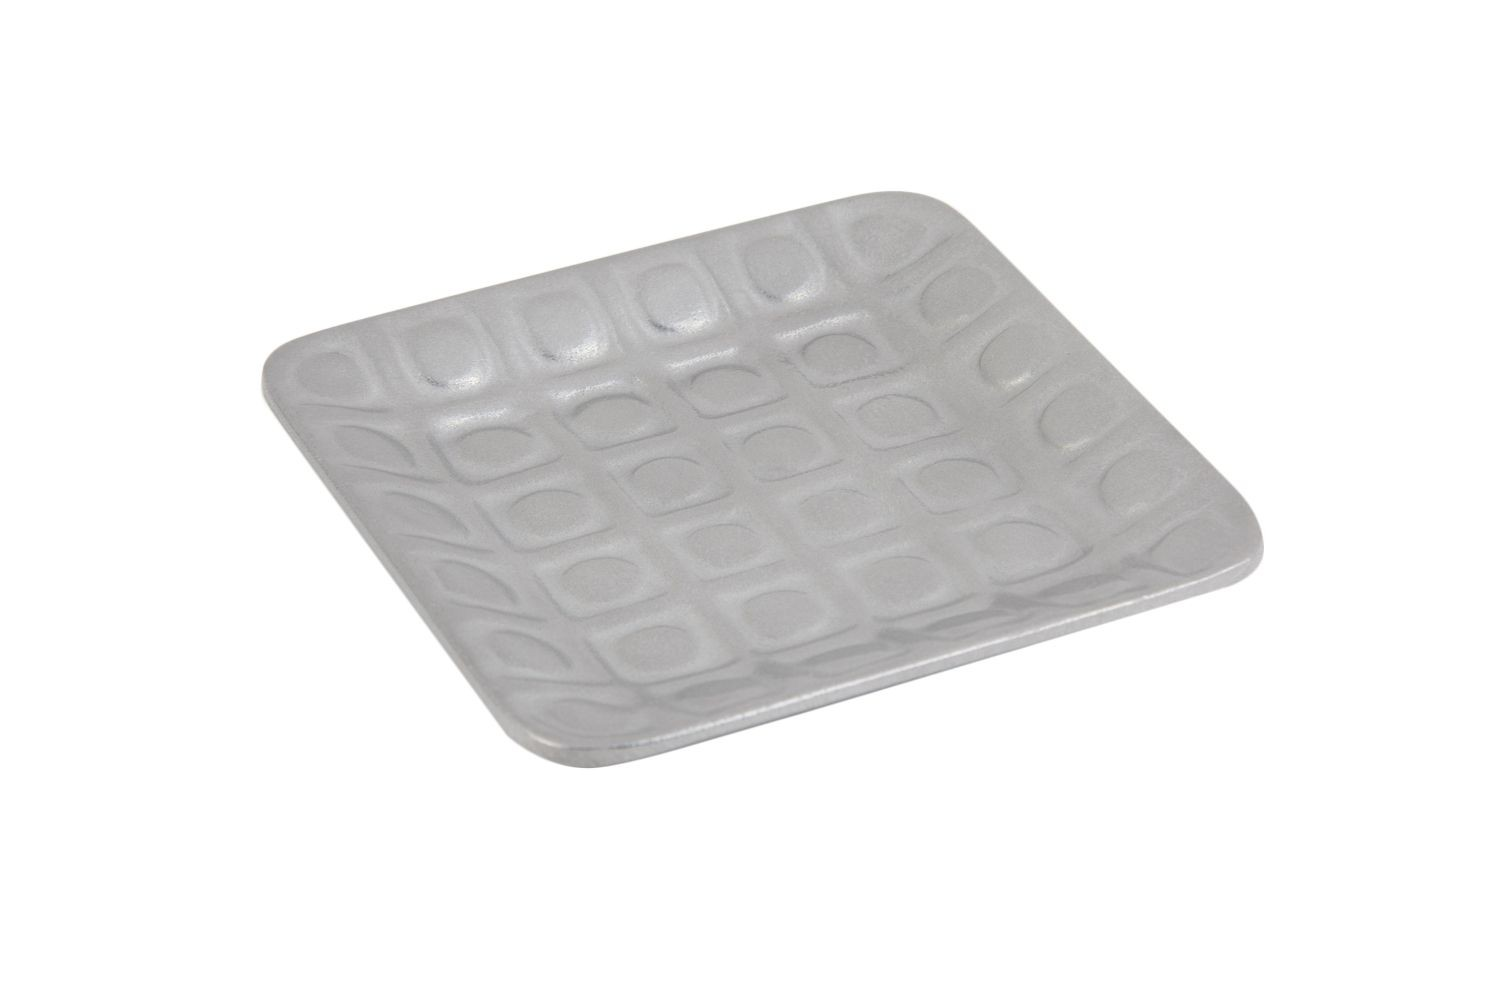 "Bon Chef 9922P Circle-Embossed Square Platter, Pewter Glo 5 1/2"" x 5 1/2"", Set of 6"